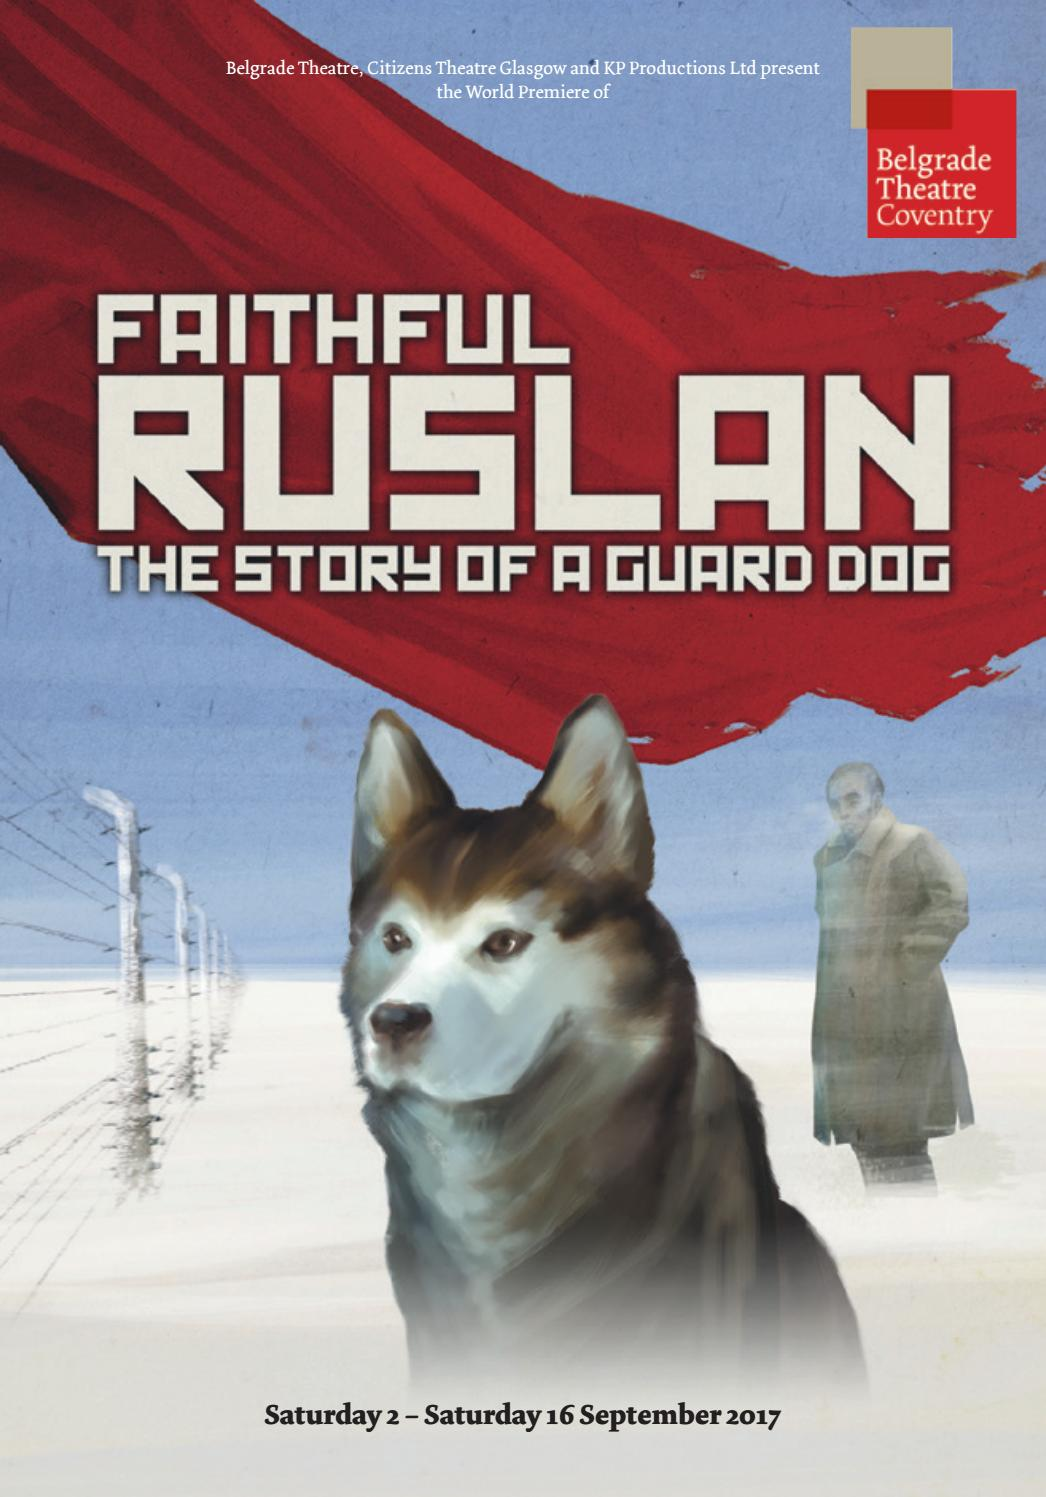 Belgrade Story A Ruslan Dog Guard By Faithful Of Programme The wklOZuTPXi